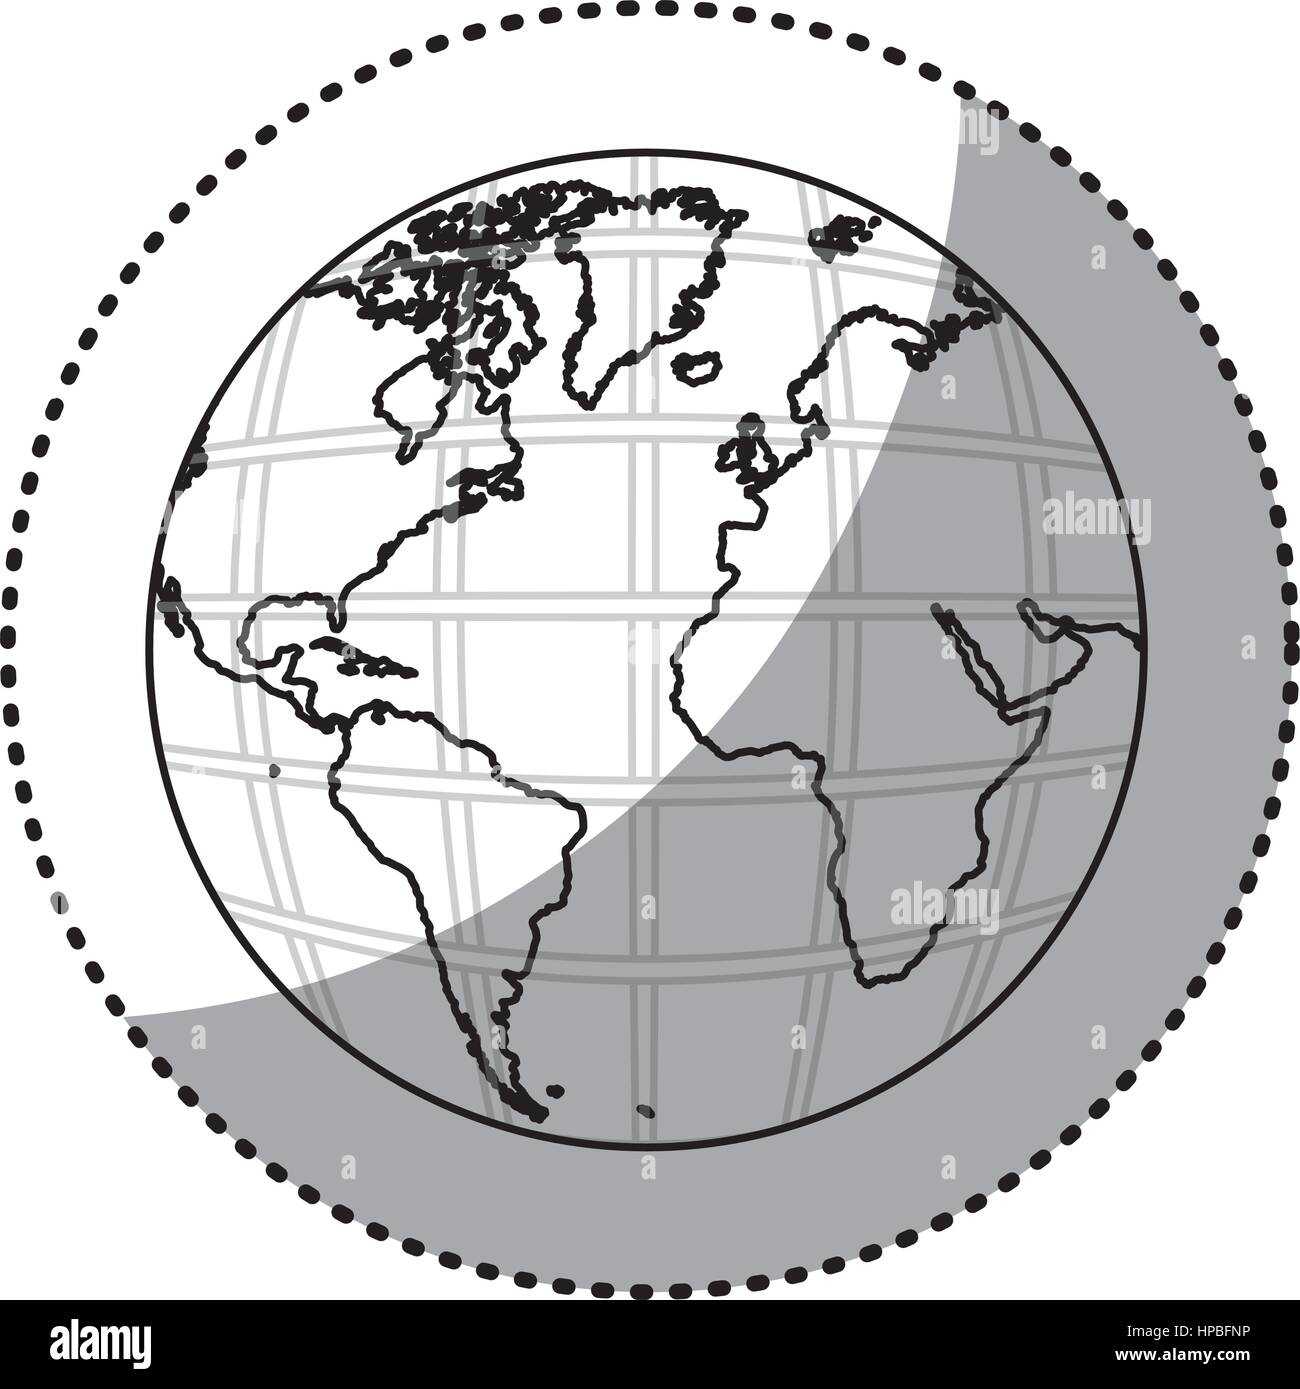 Sticker silhouette earth world map with continents in 3d stock sticker silhouette earth world map with continents in 3d gumiabroncs Images